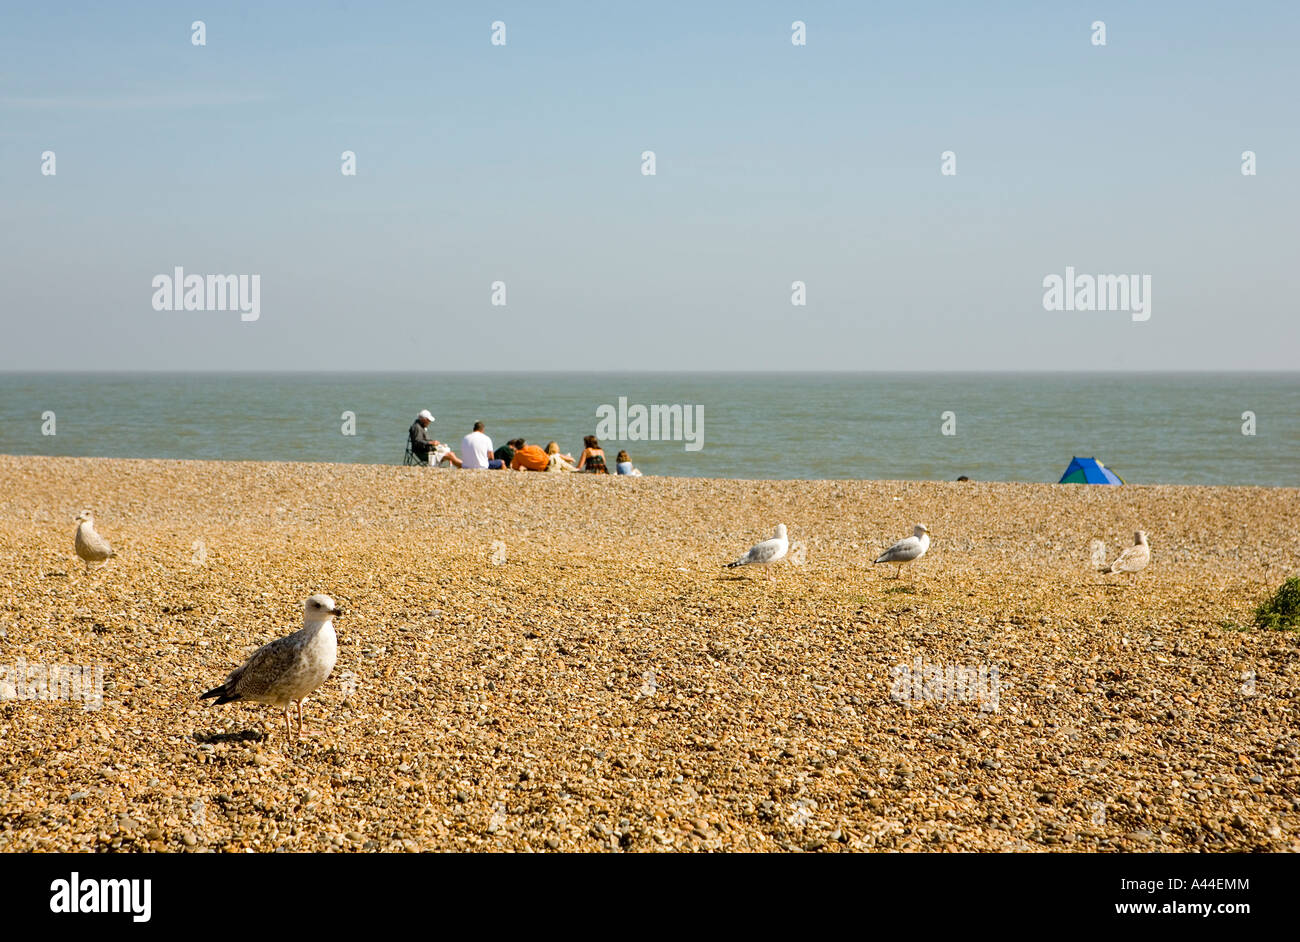 Family of seagulls with a human family in the background on Aldeburgh beach in Suffolk England shot September 2006 Stock Photo